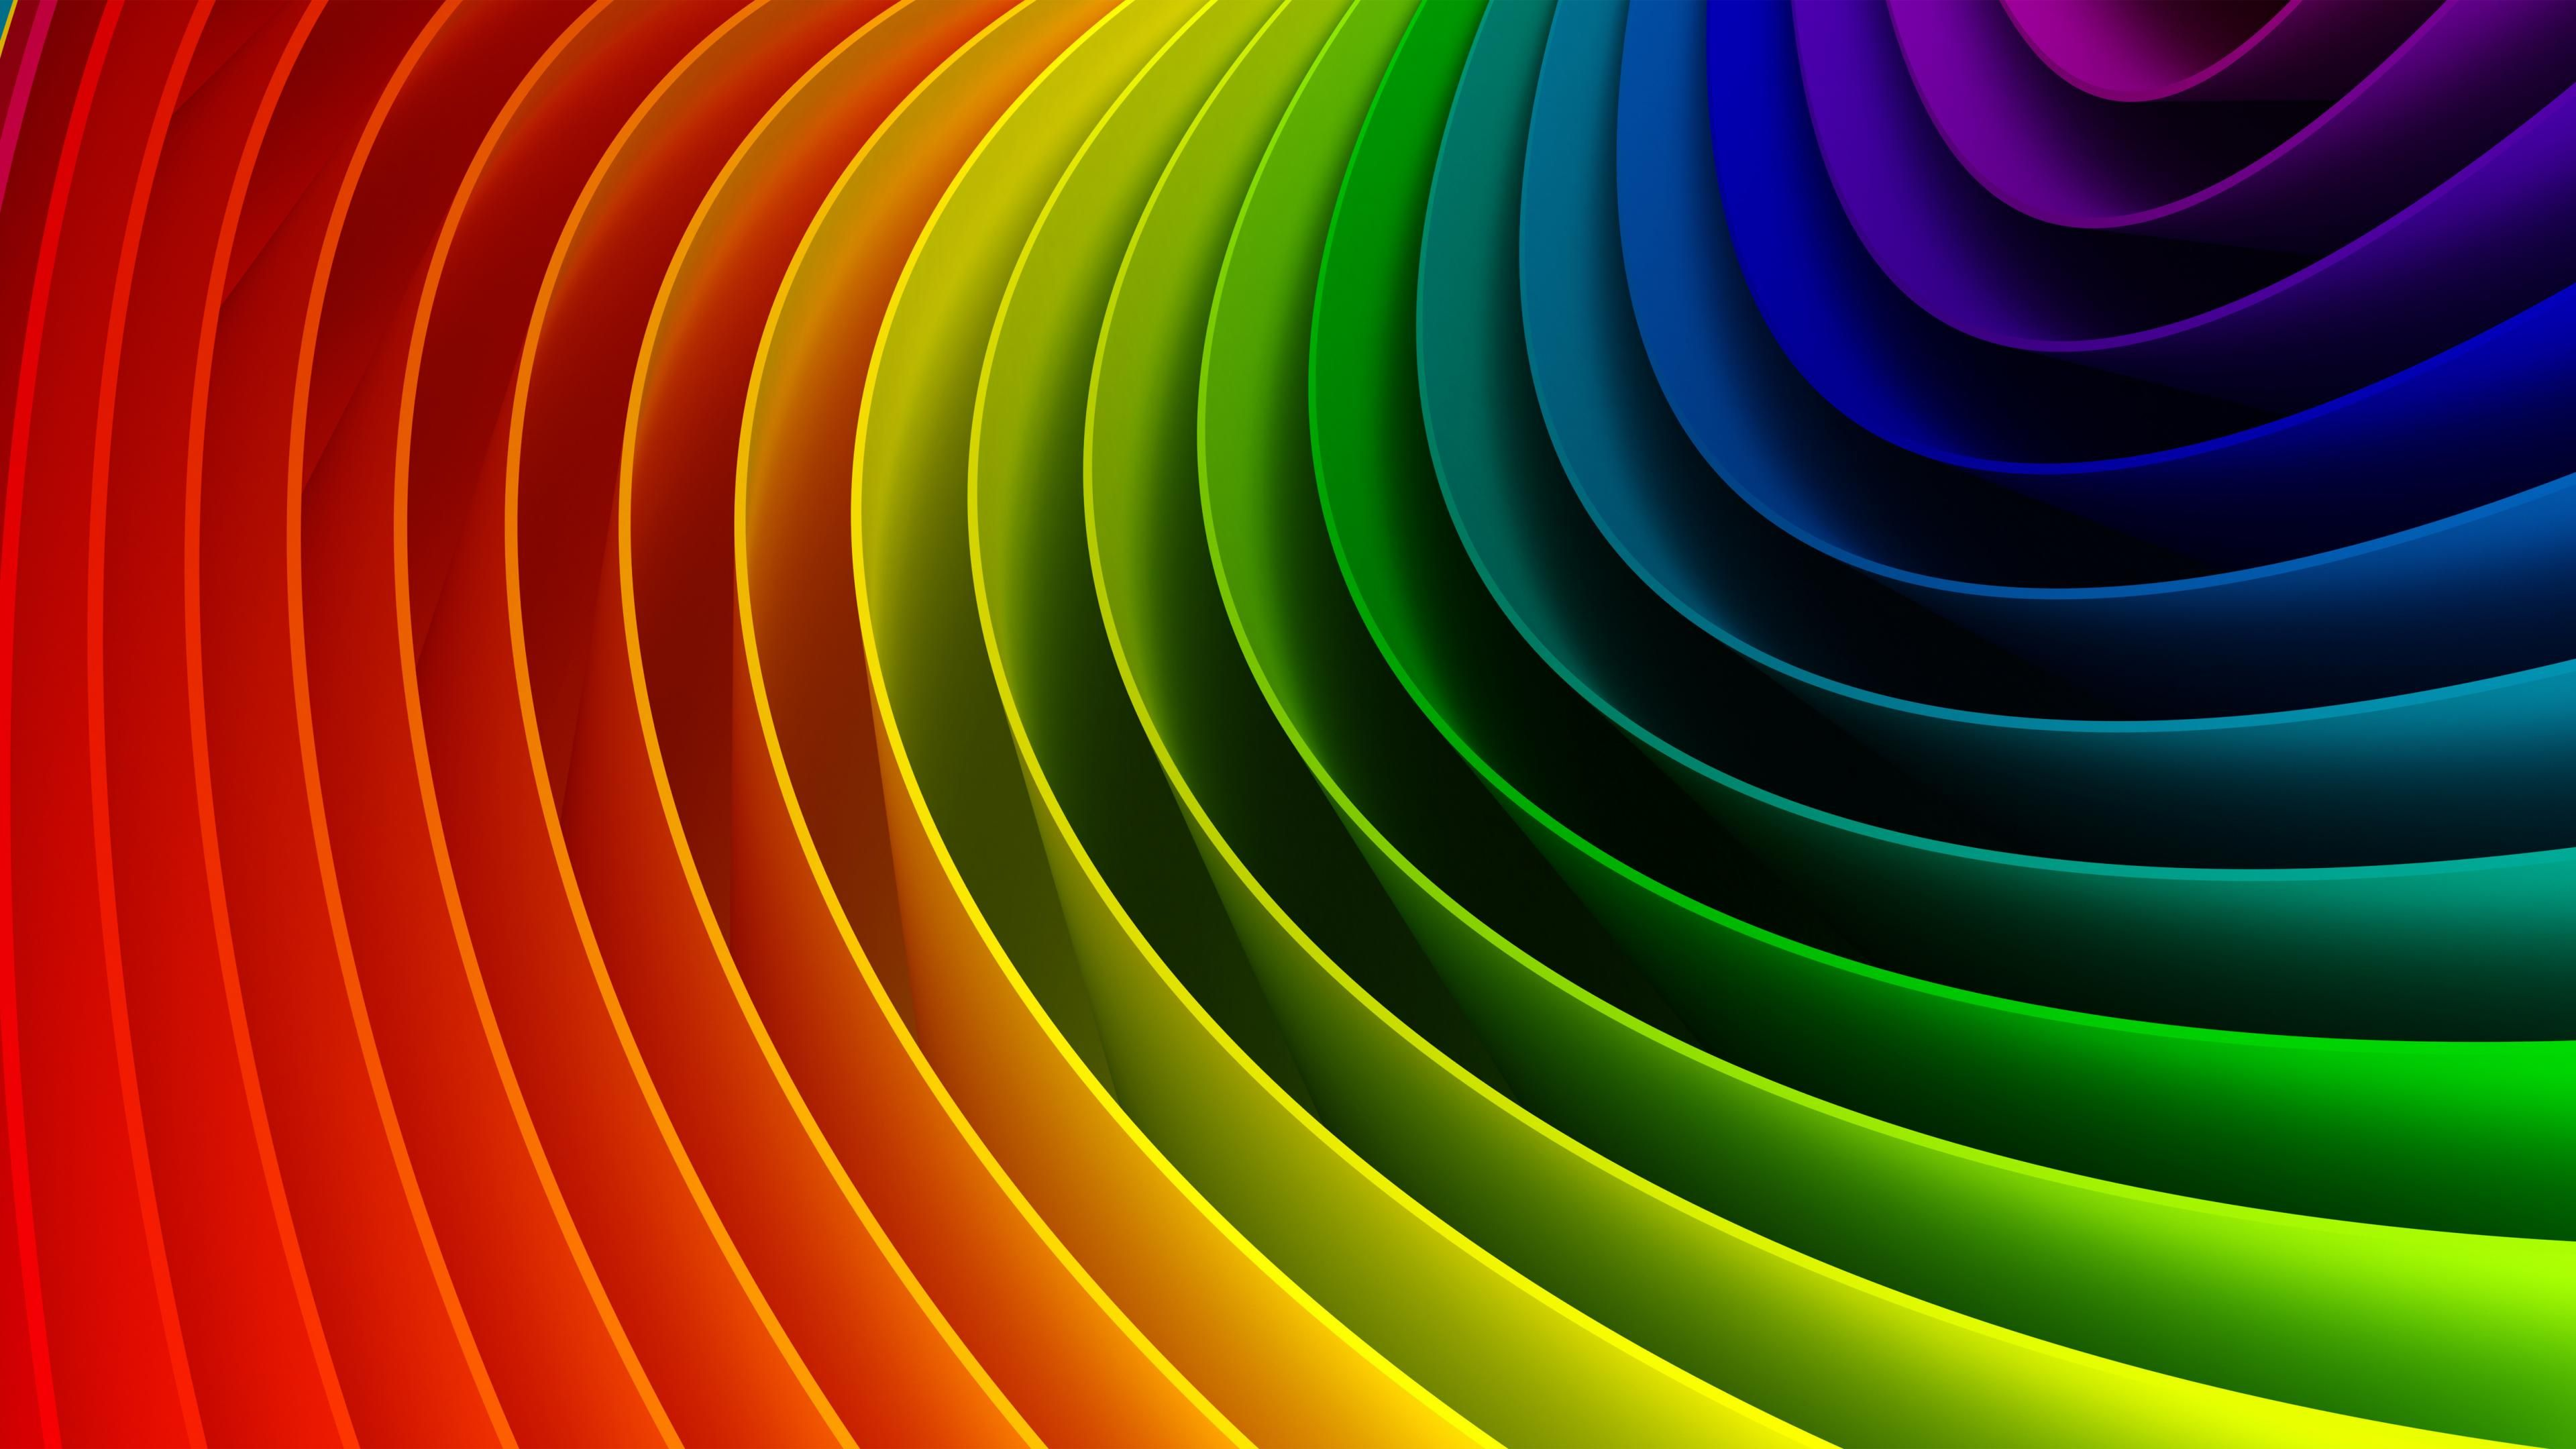 4k rainbow wallpapers high quality download free